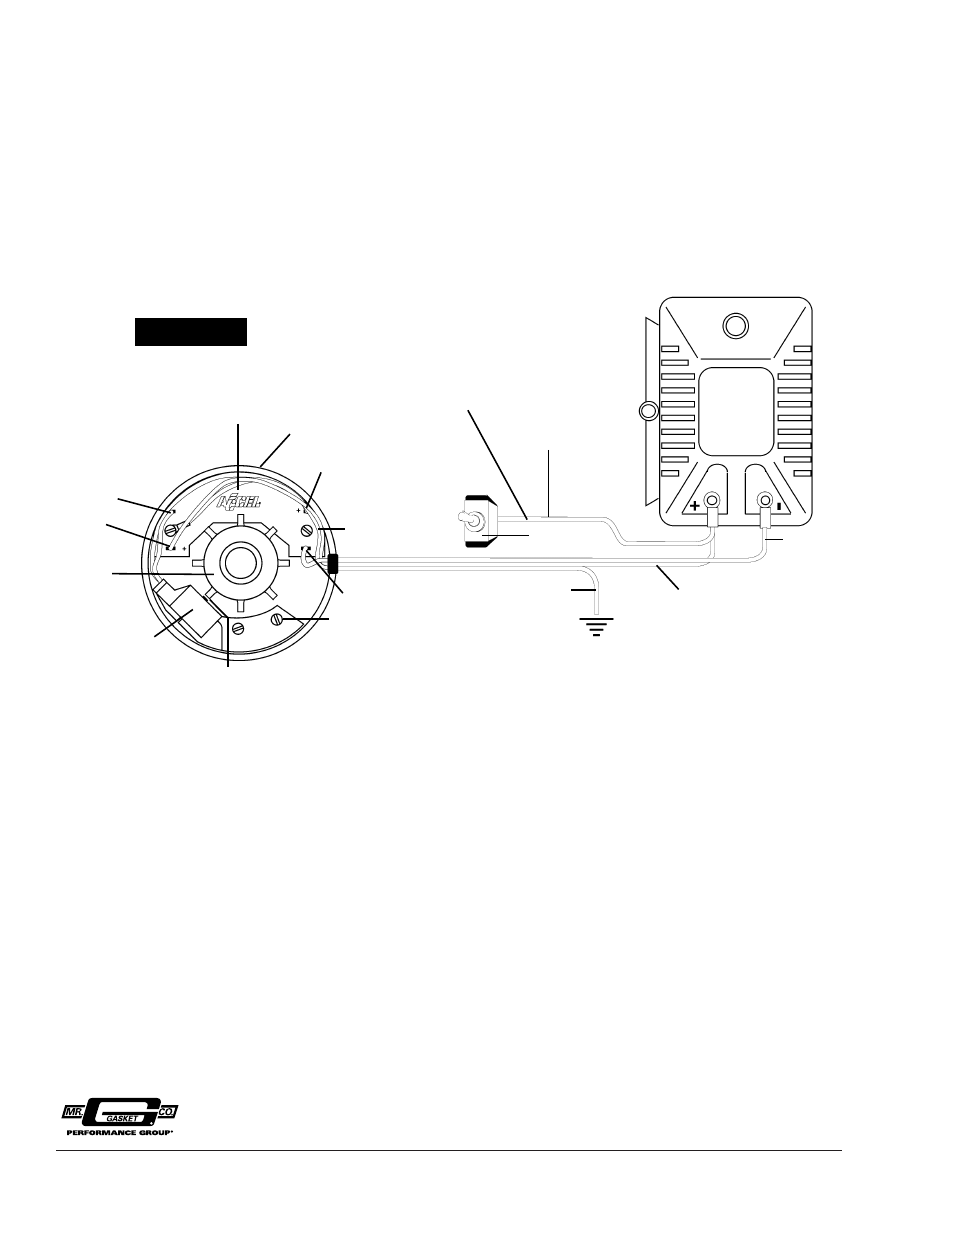 mallory ignition accel magnetic breakerless distributors 71000 page2?resize\\\=665%2C861 diagrams 16752175 accel distributor wiring diagram msd ignition accel street billet distributor wiring diagram at webbmarketing.co